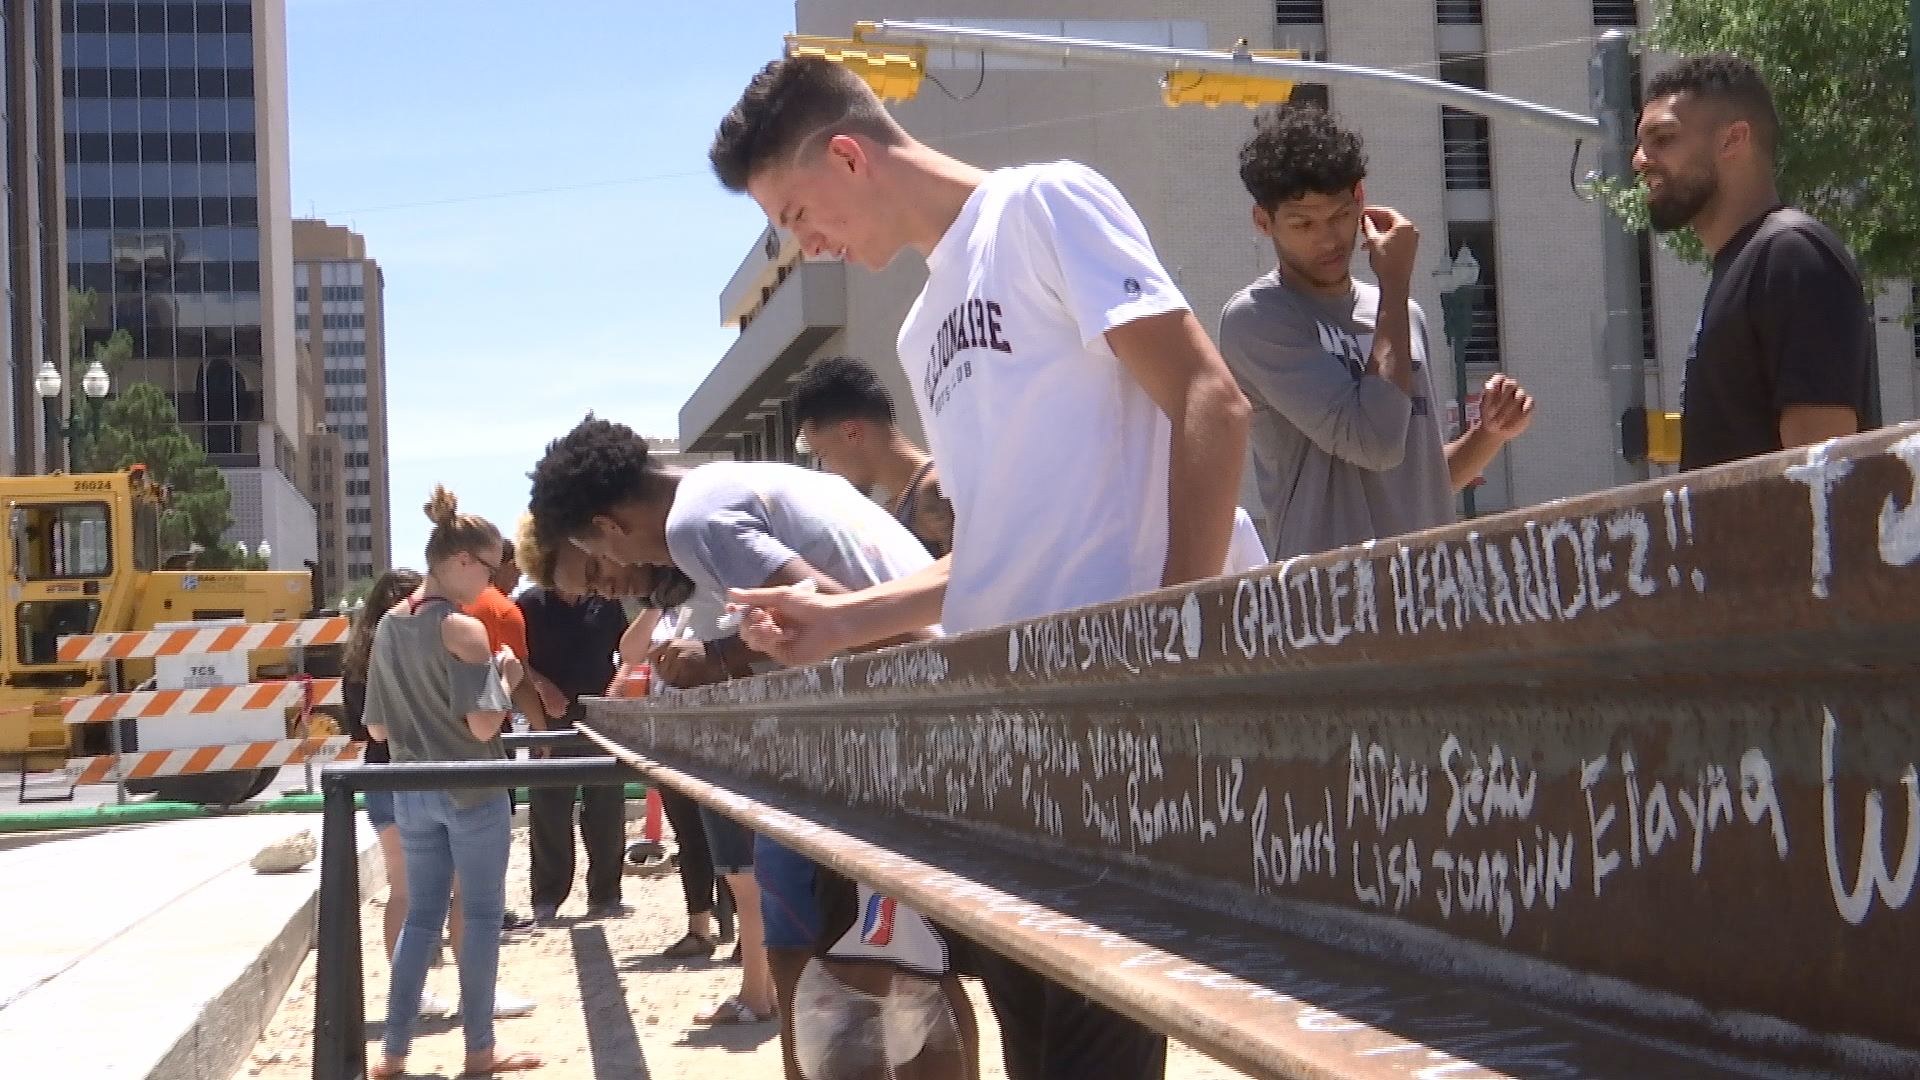 People got the opportunity to sign their name on the last piece of rail to be laid down for the Streetcar Project. (Credit: CBS4/KFOX14)